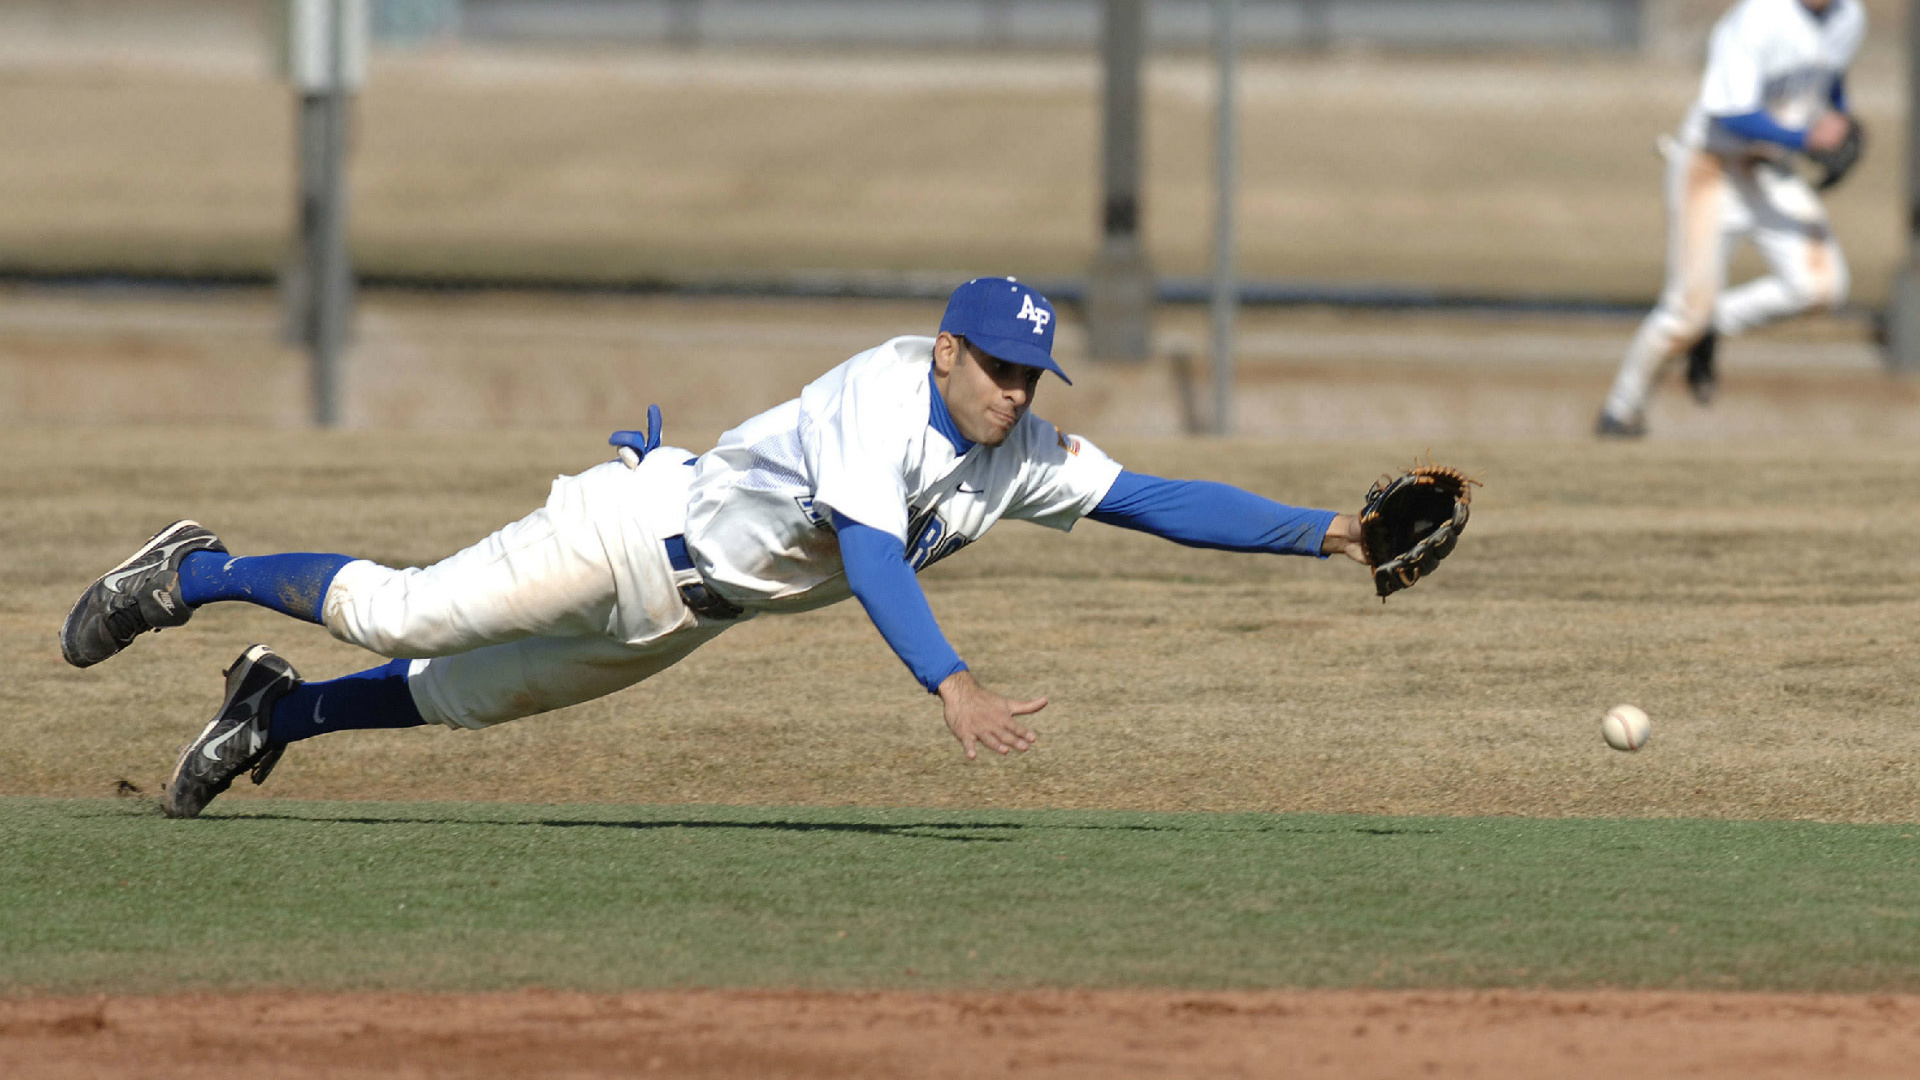 Baseball infielder laying out for a line drive